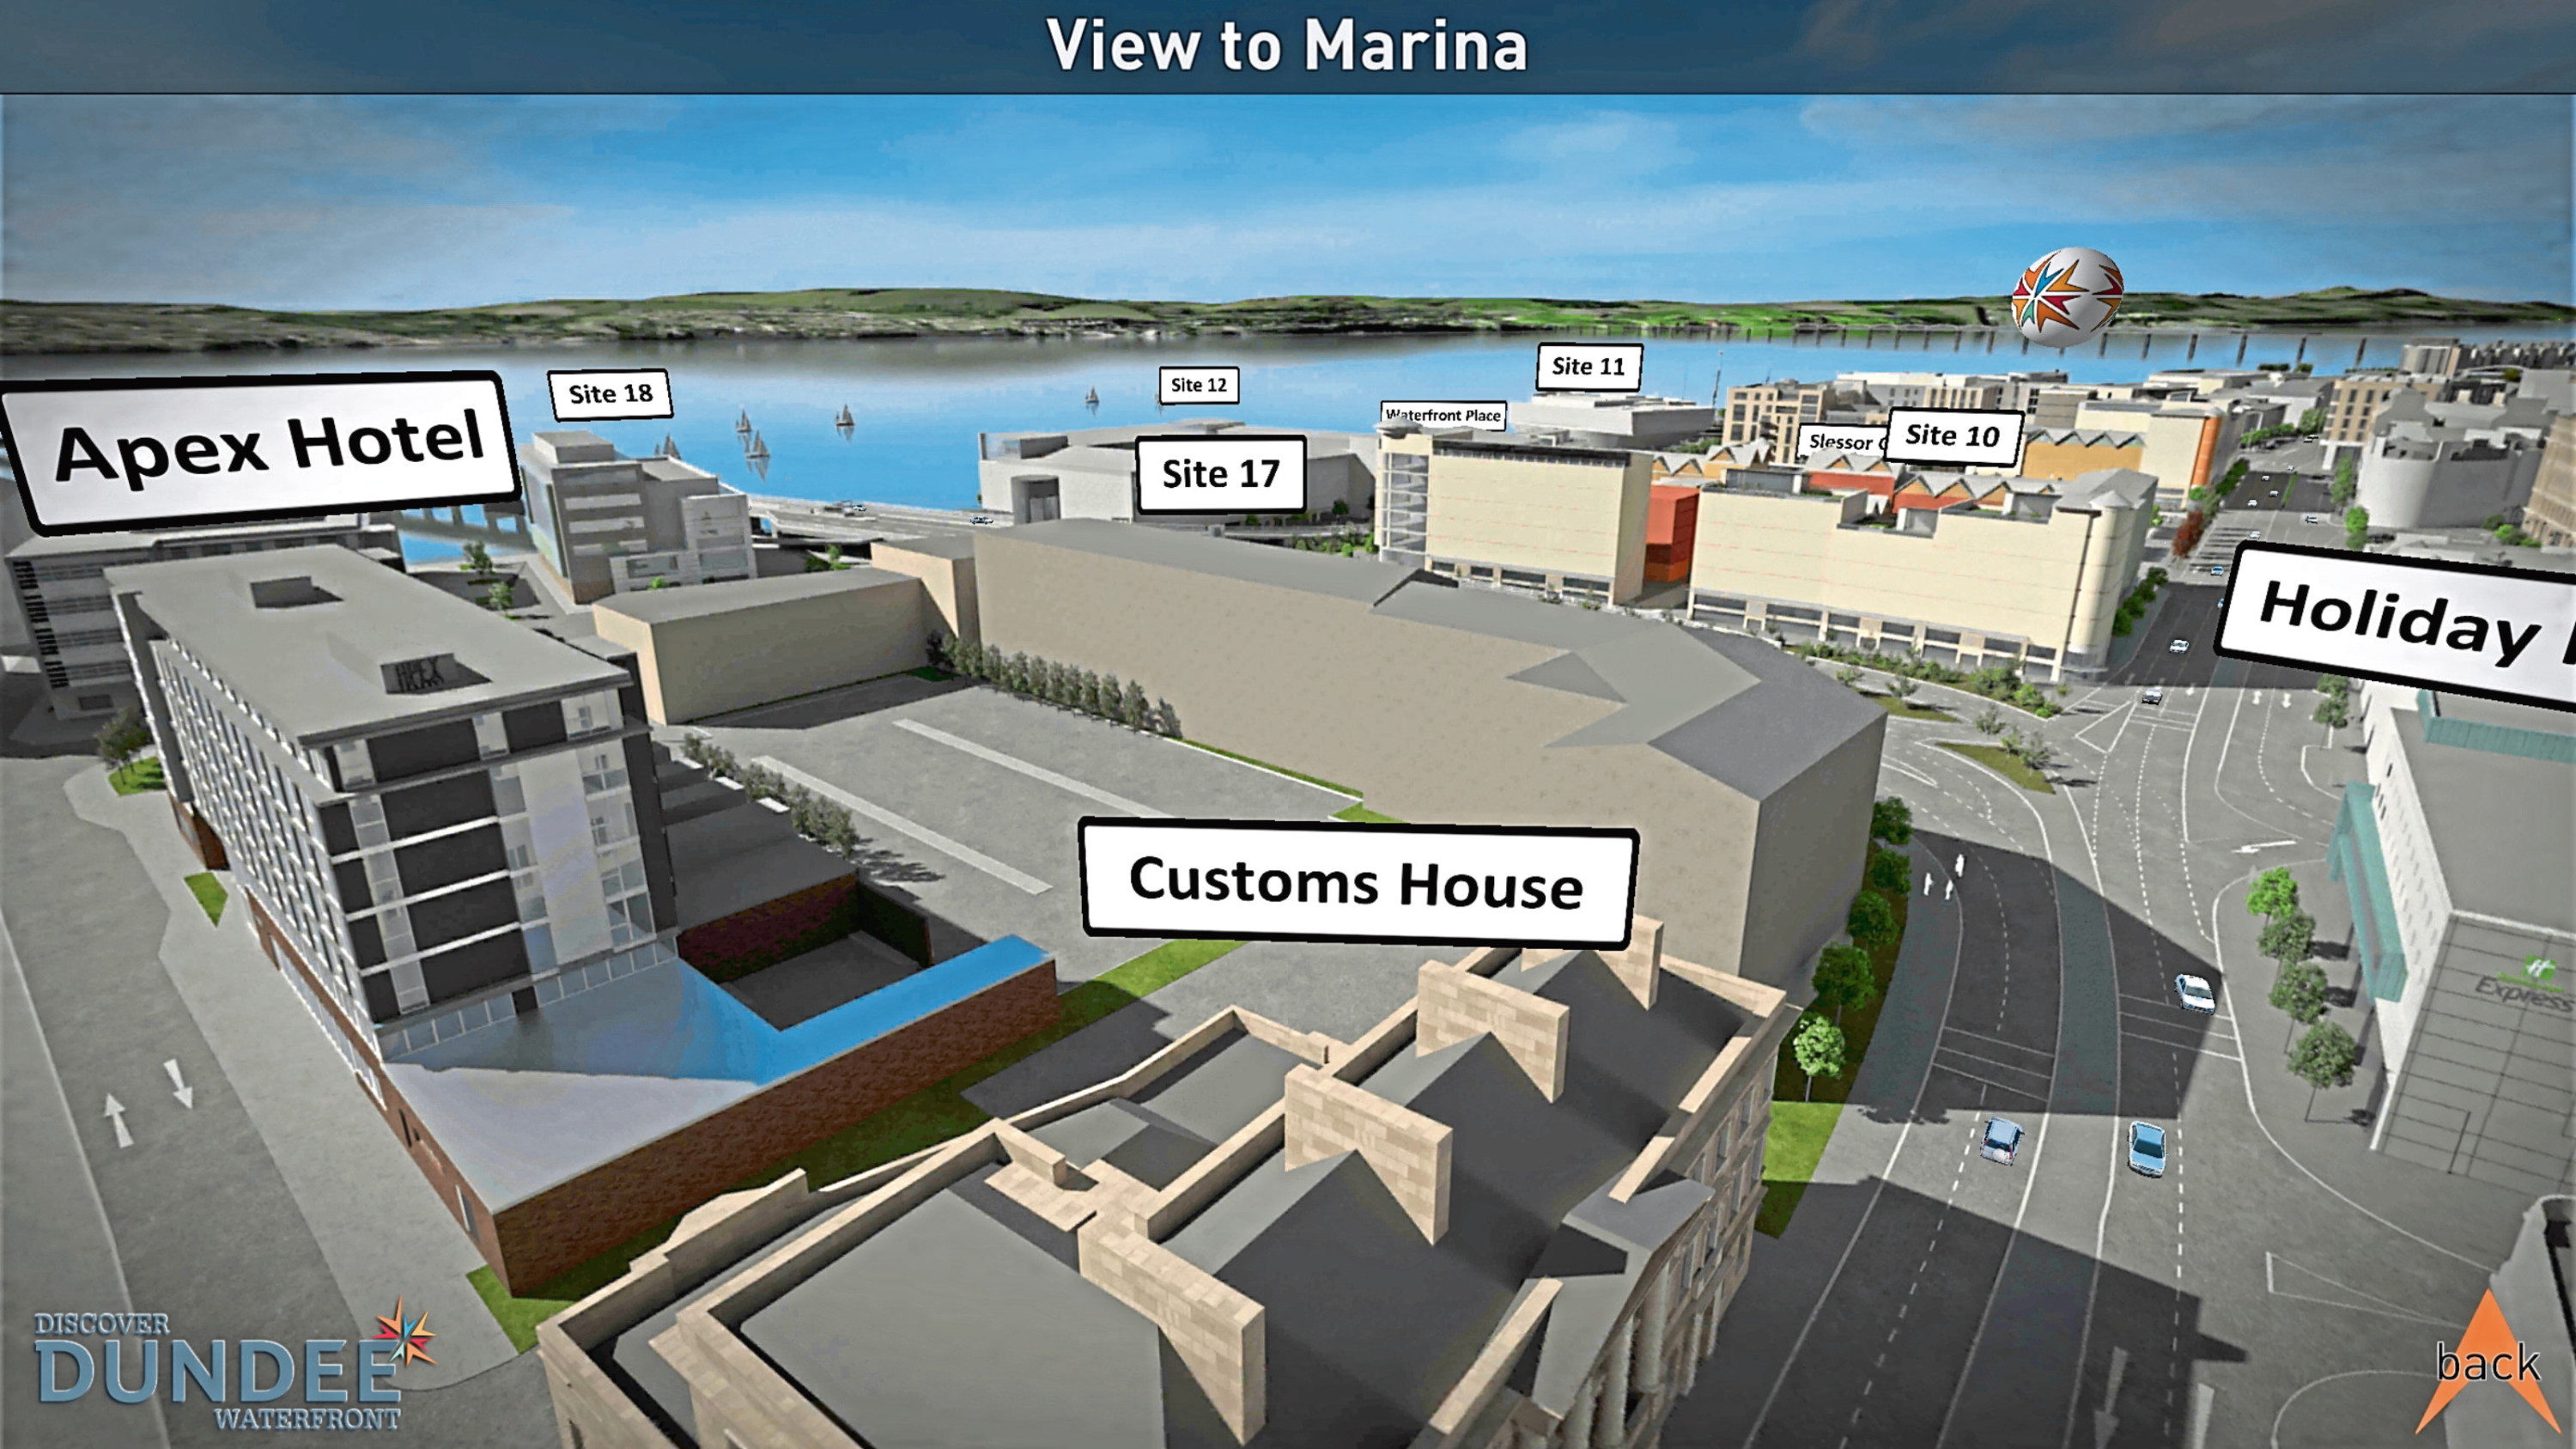 Plans for the Waterfront site